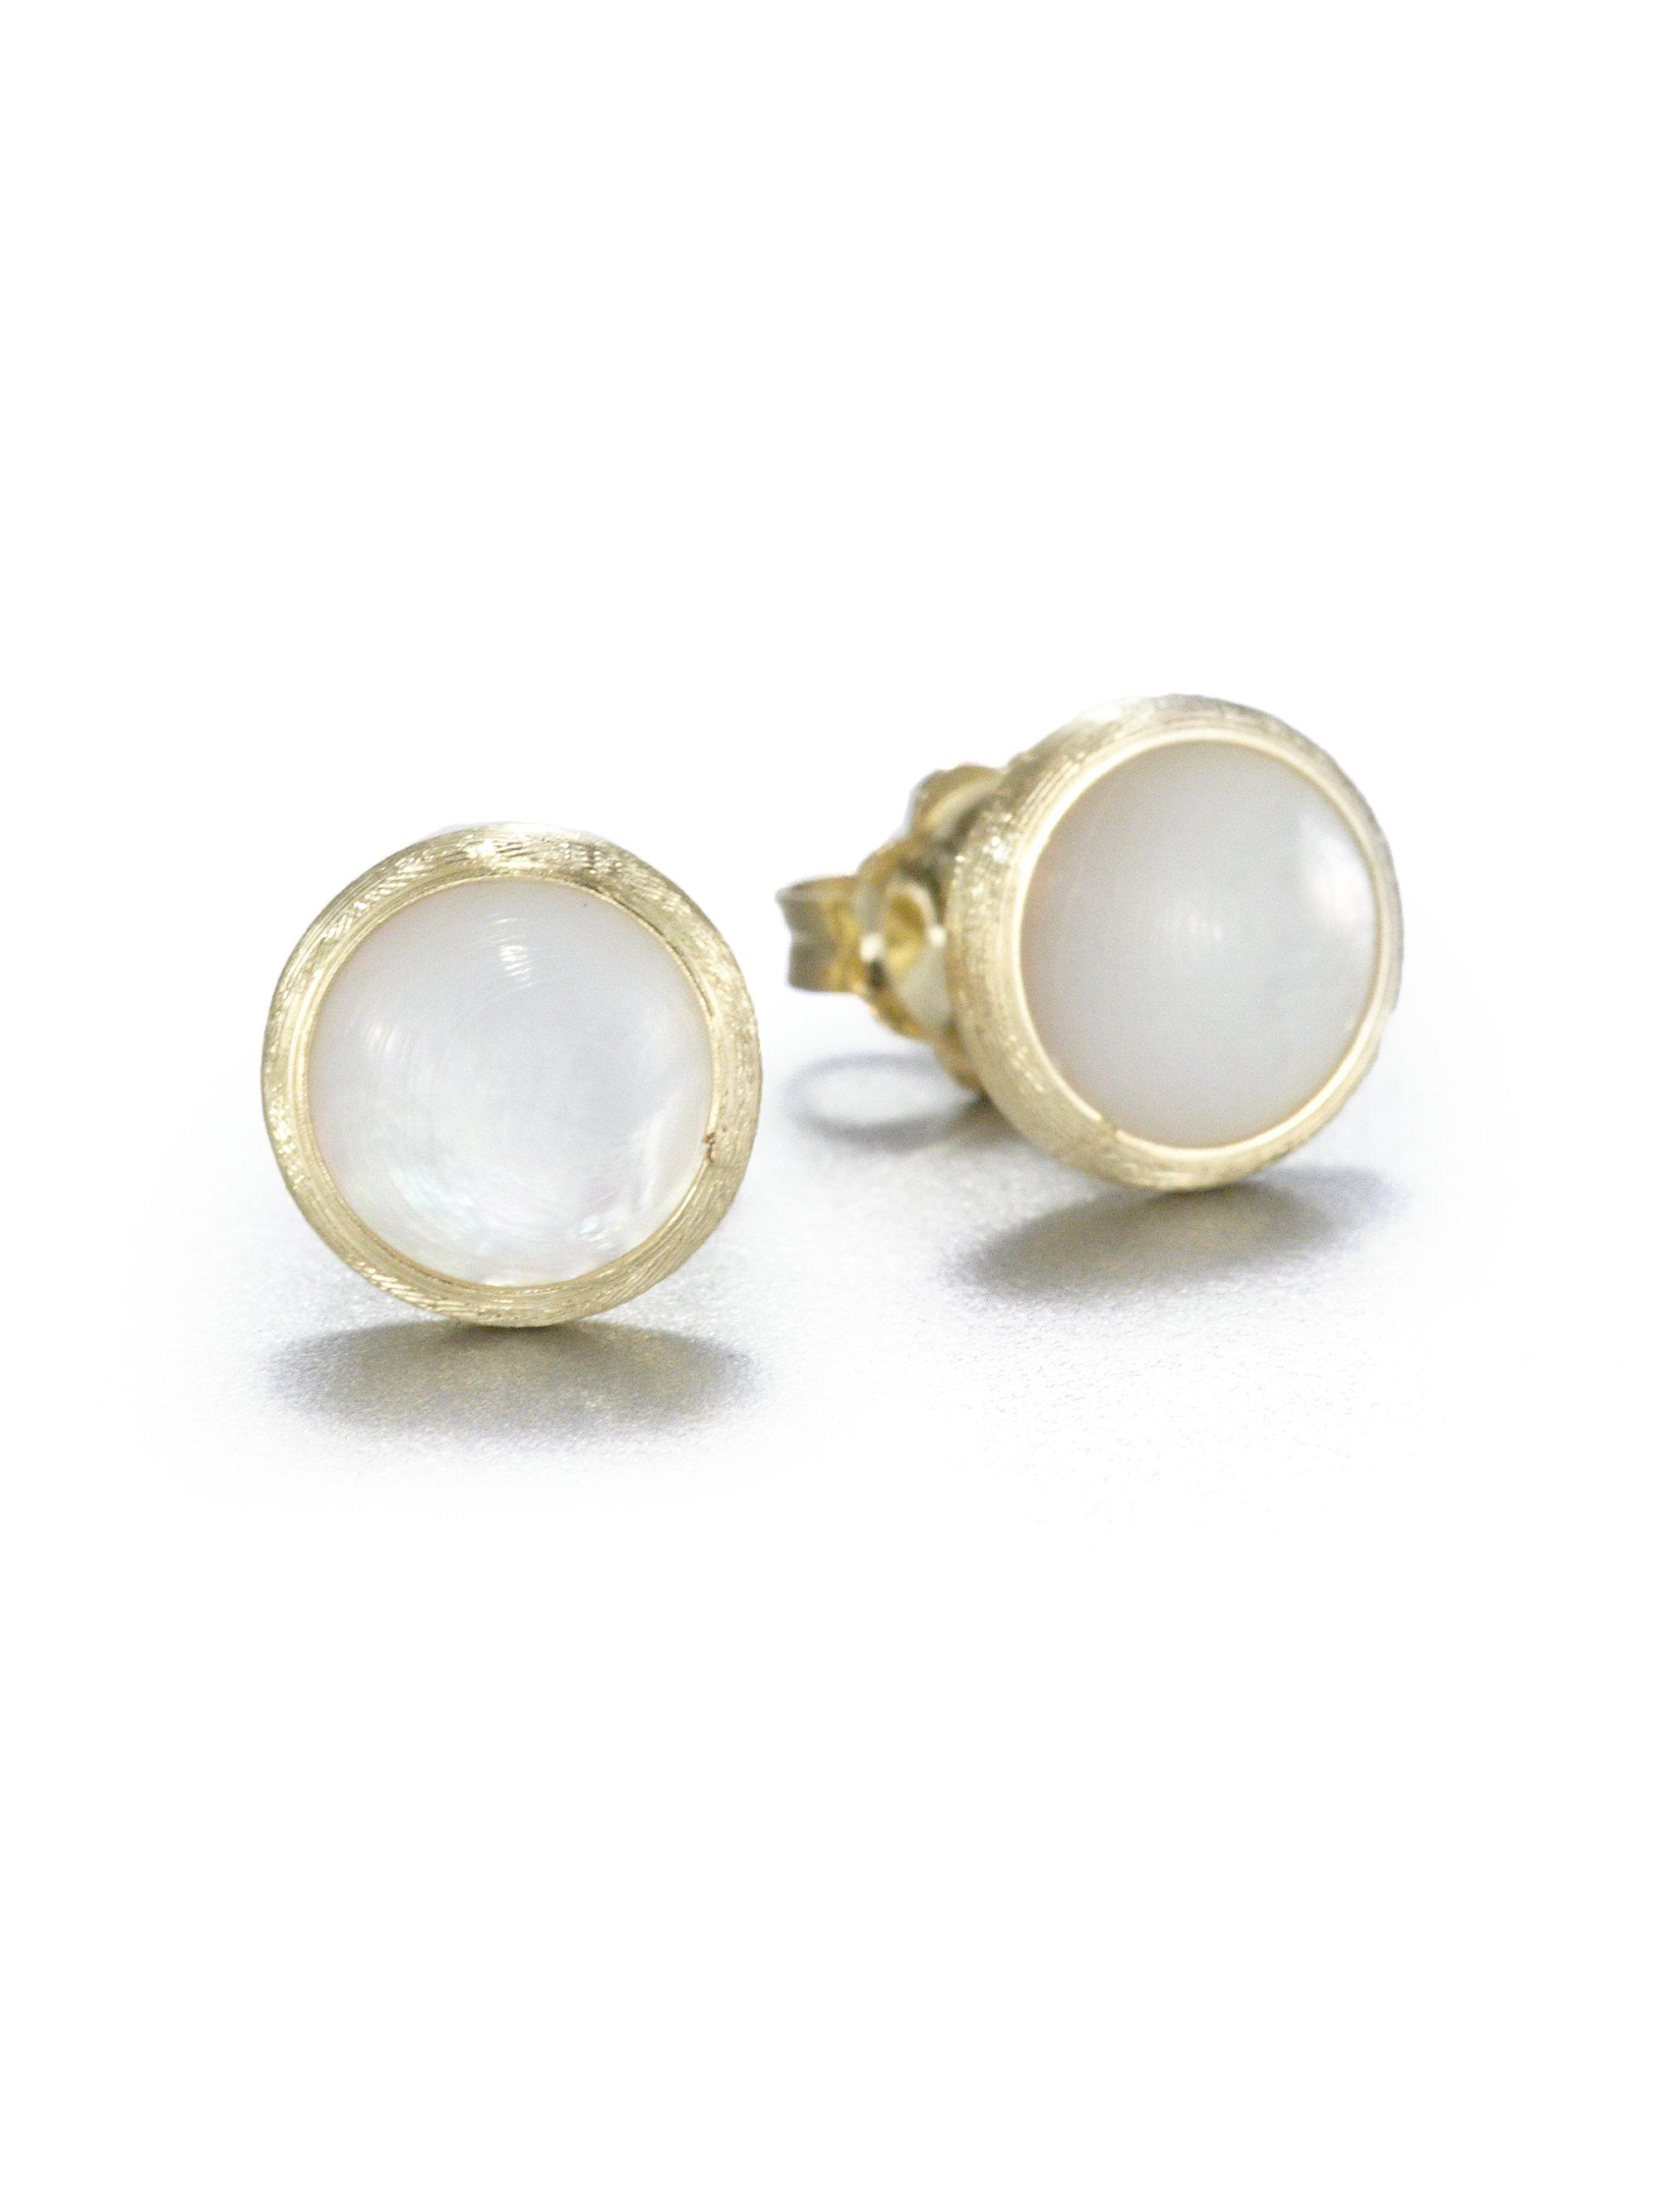 Marco Bicego Jaipur Mother-of-Pearl Stud Earrings p0mg8t2